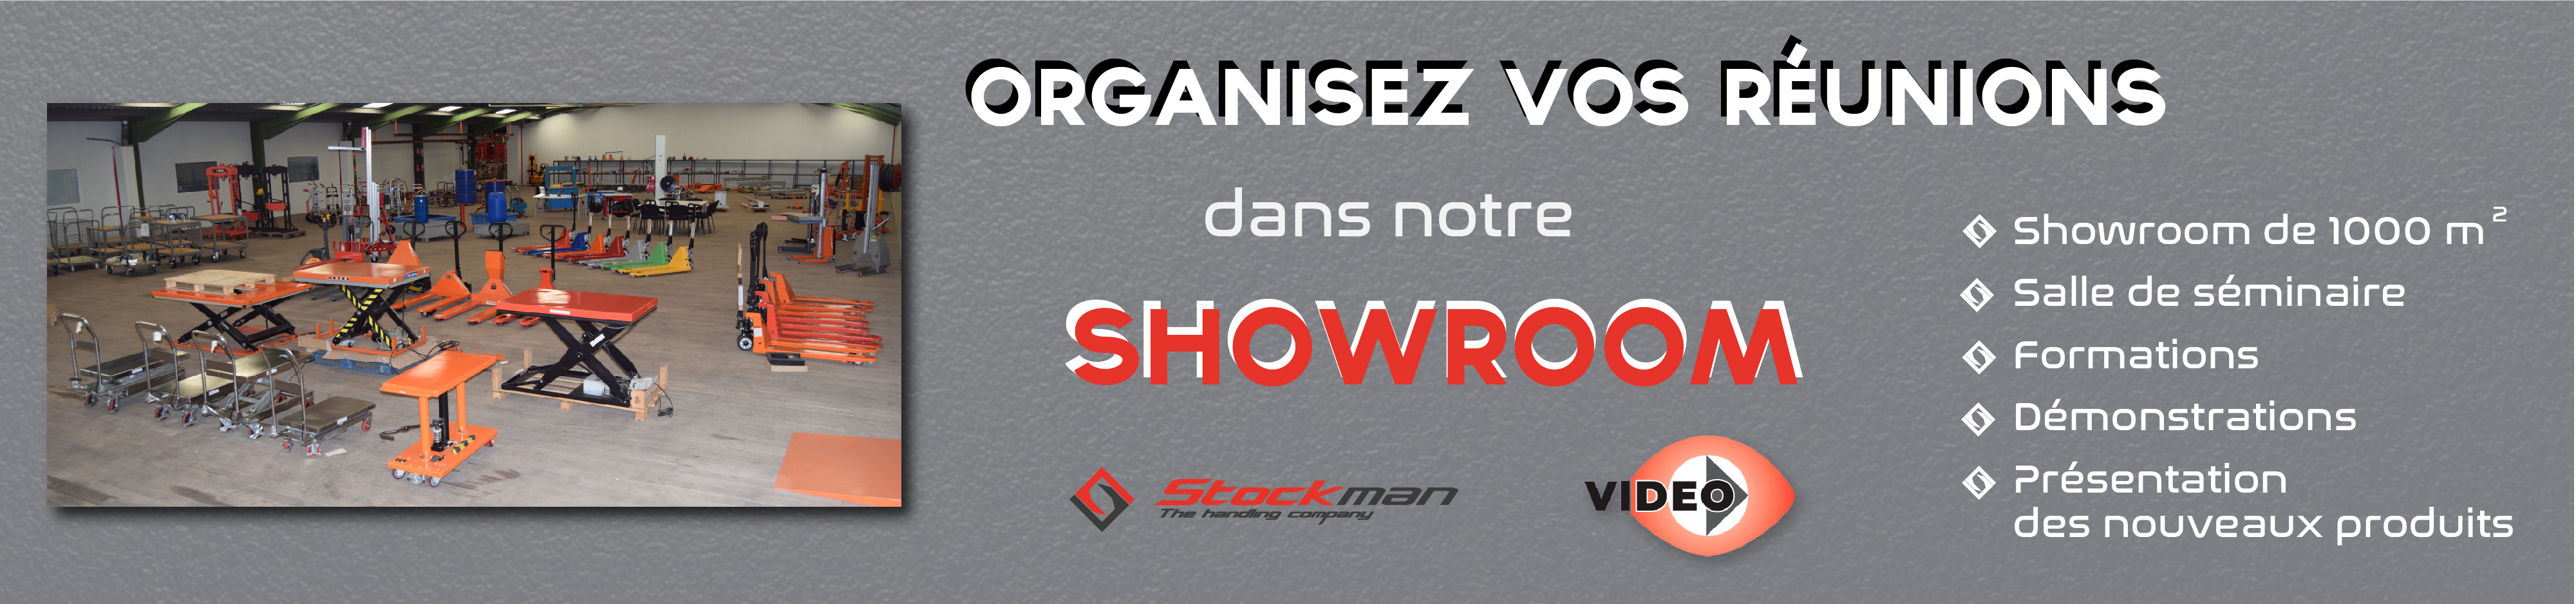 https://www.stockman.fr/actualites/detail/decouvrez-le-showroom-stockman-en-video--77.aspx